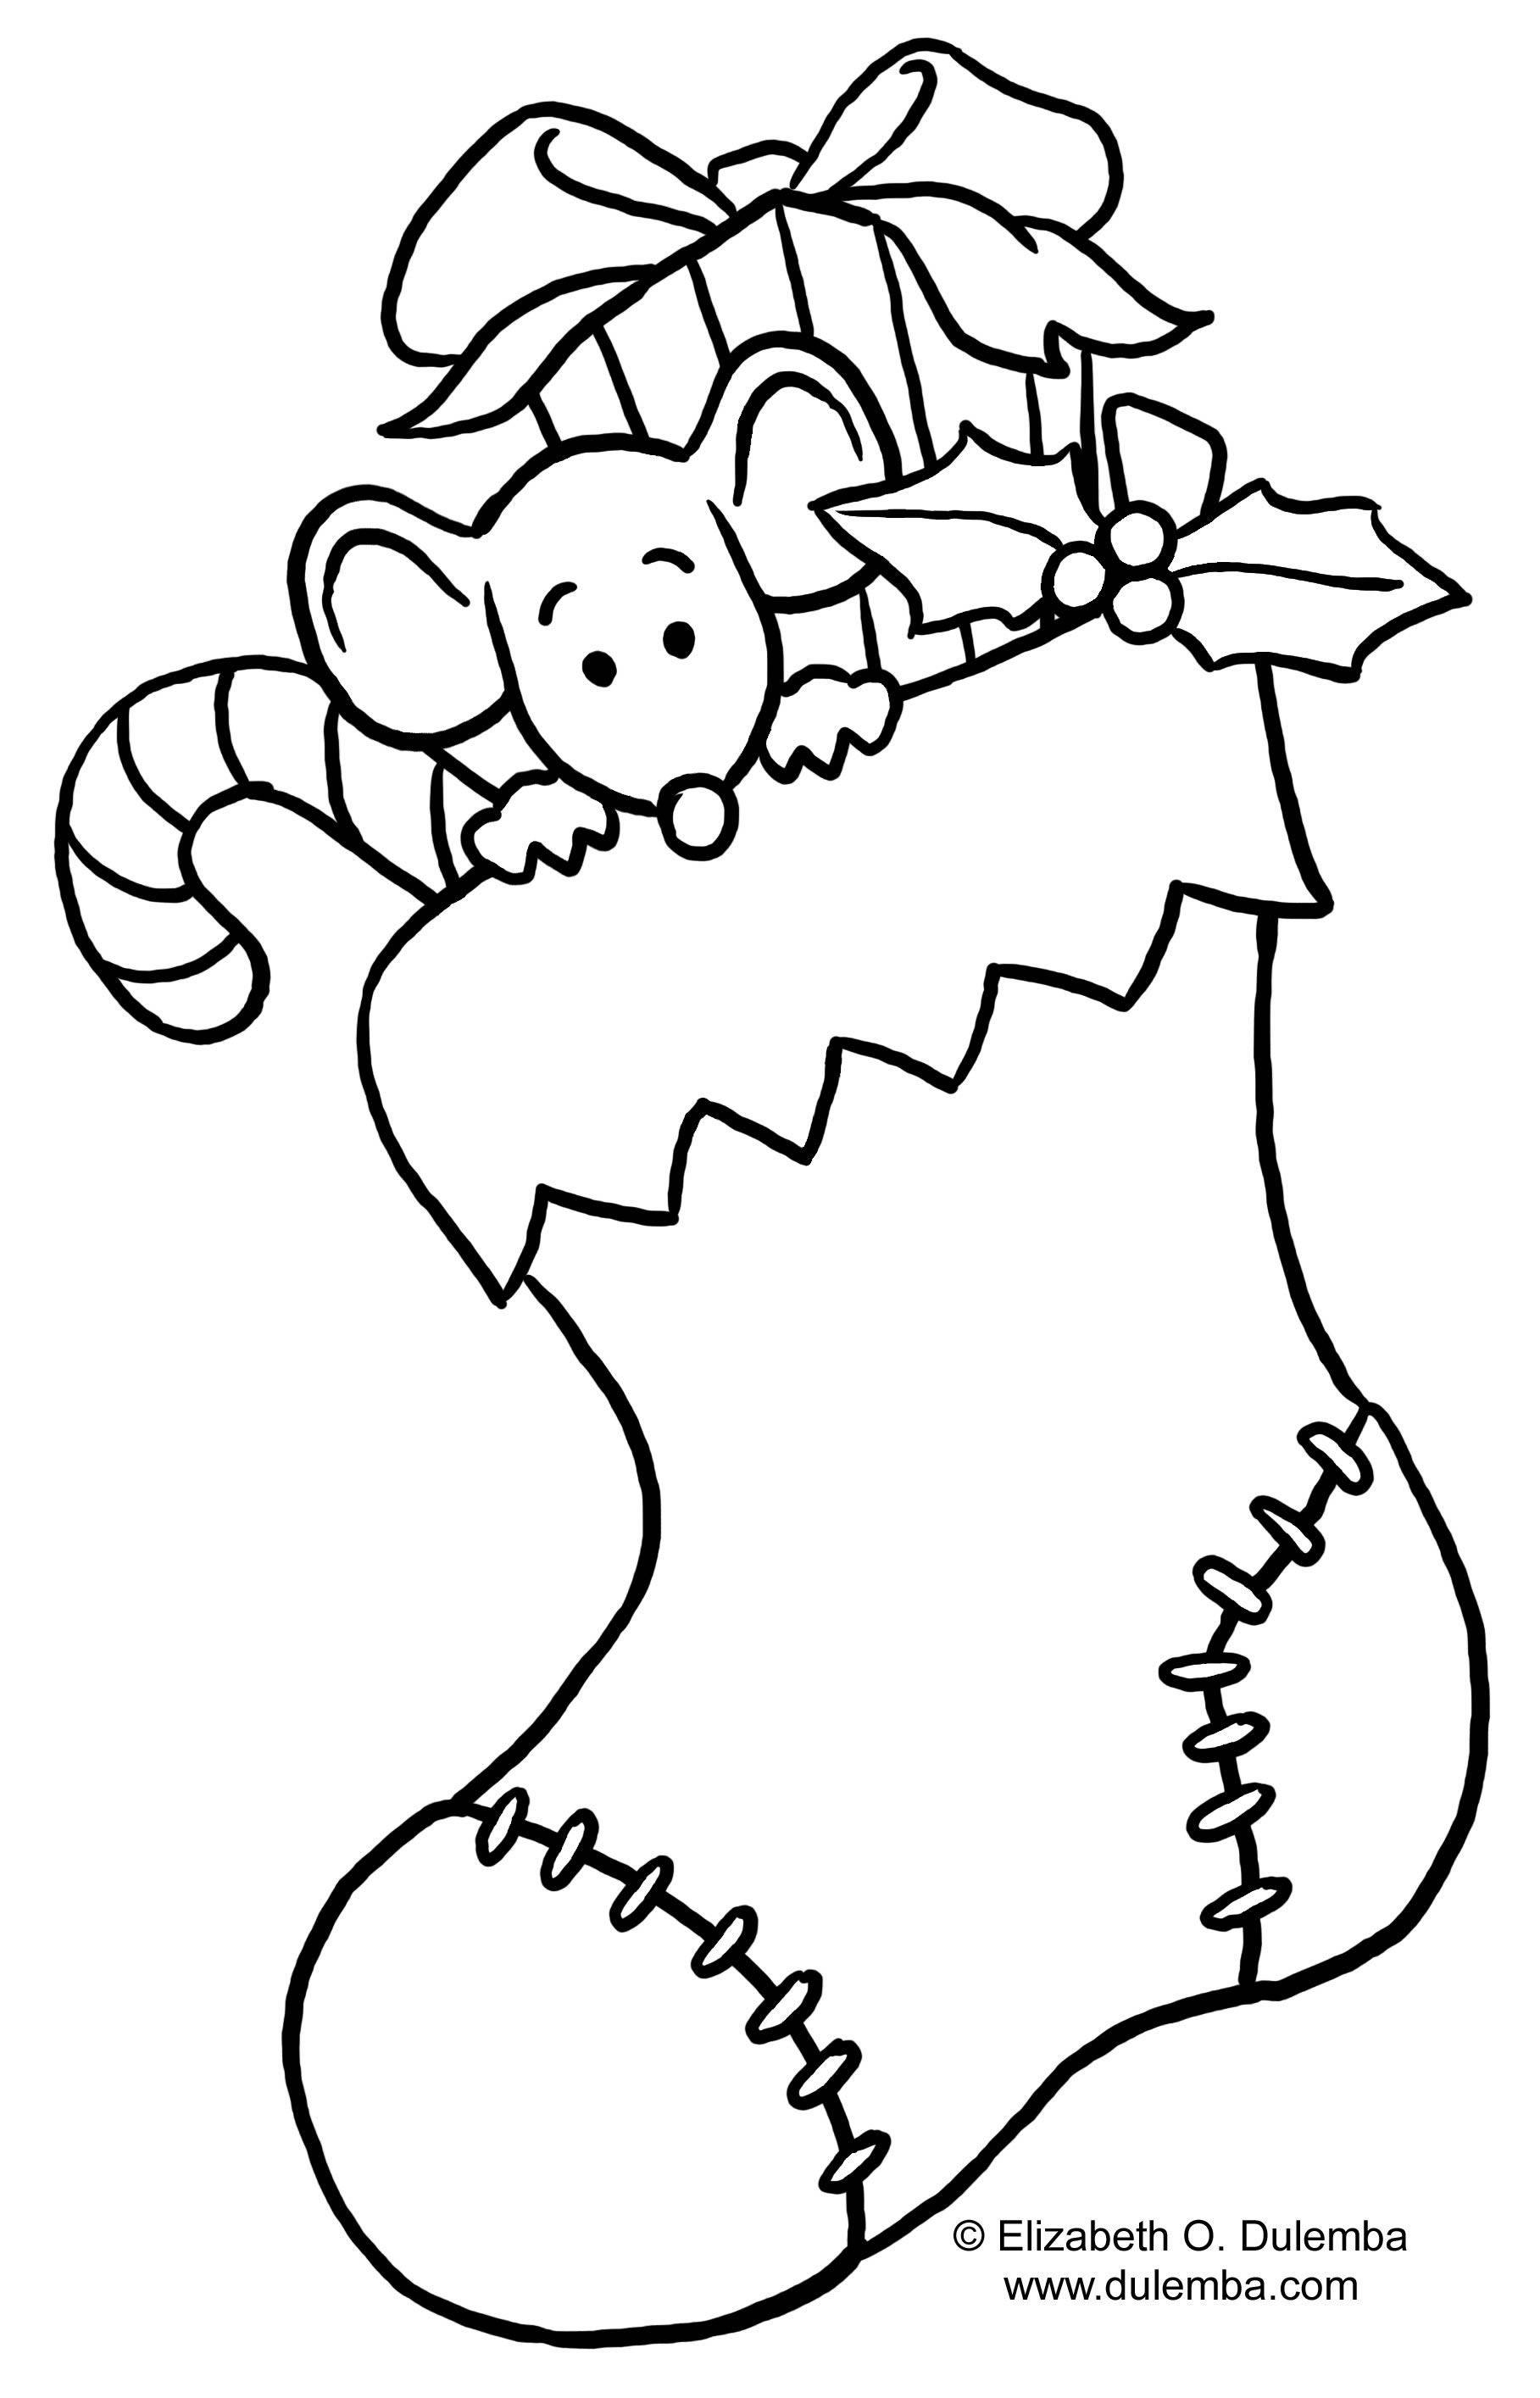 Australian Santa Coloring Page With Christmas Pages For Kids 2018 Z31